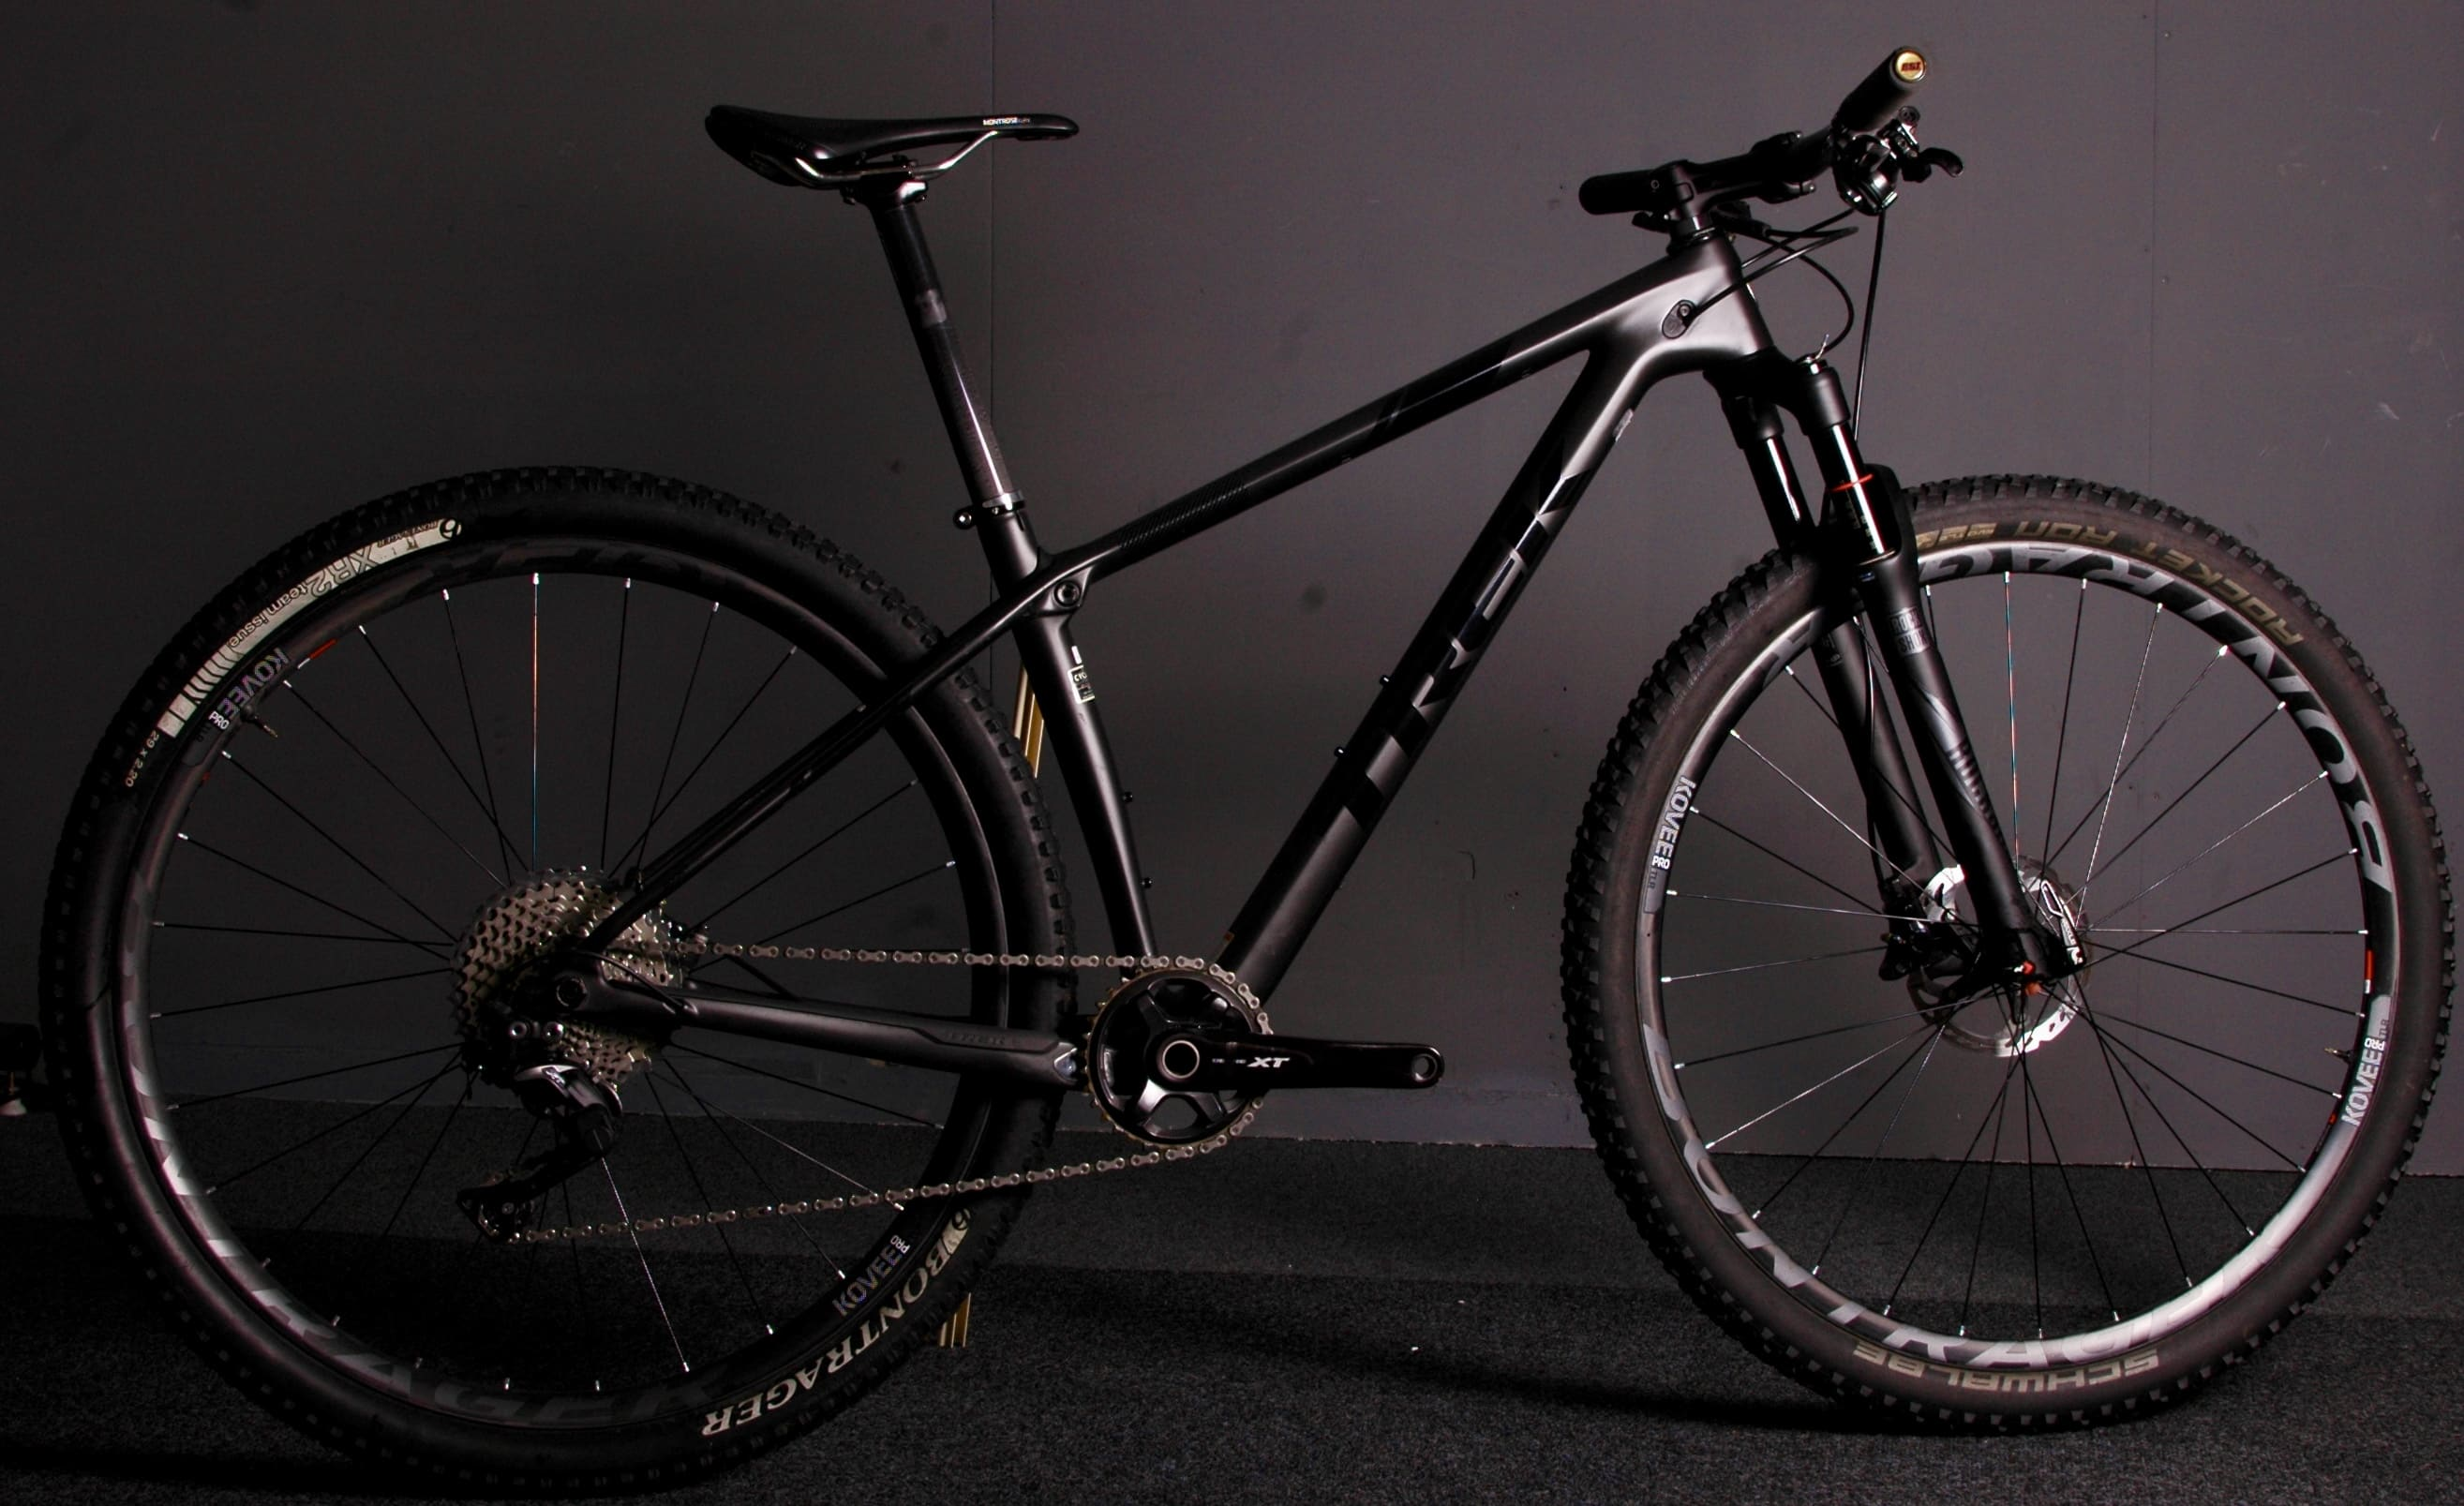 Used Bike - Trek Procaliber 9.8 SL 2017 17.5 Inch - £1699